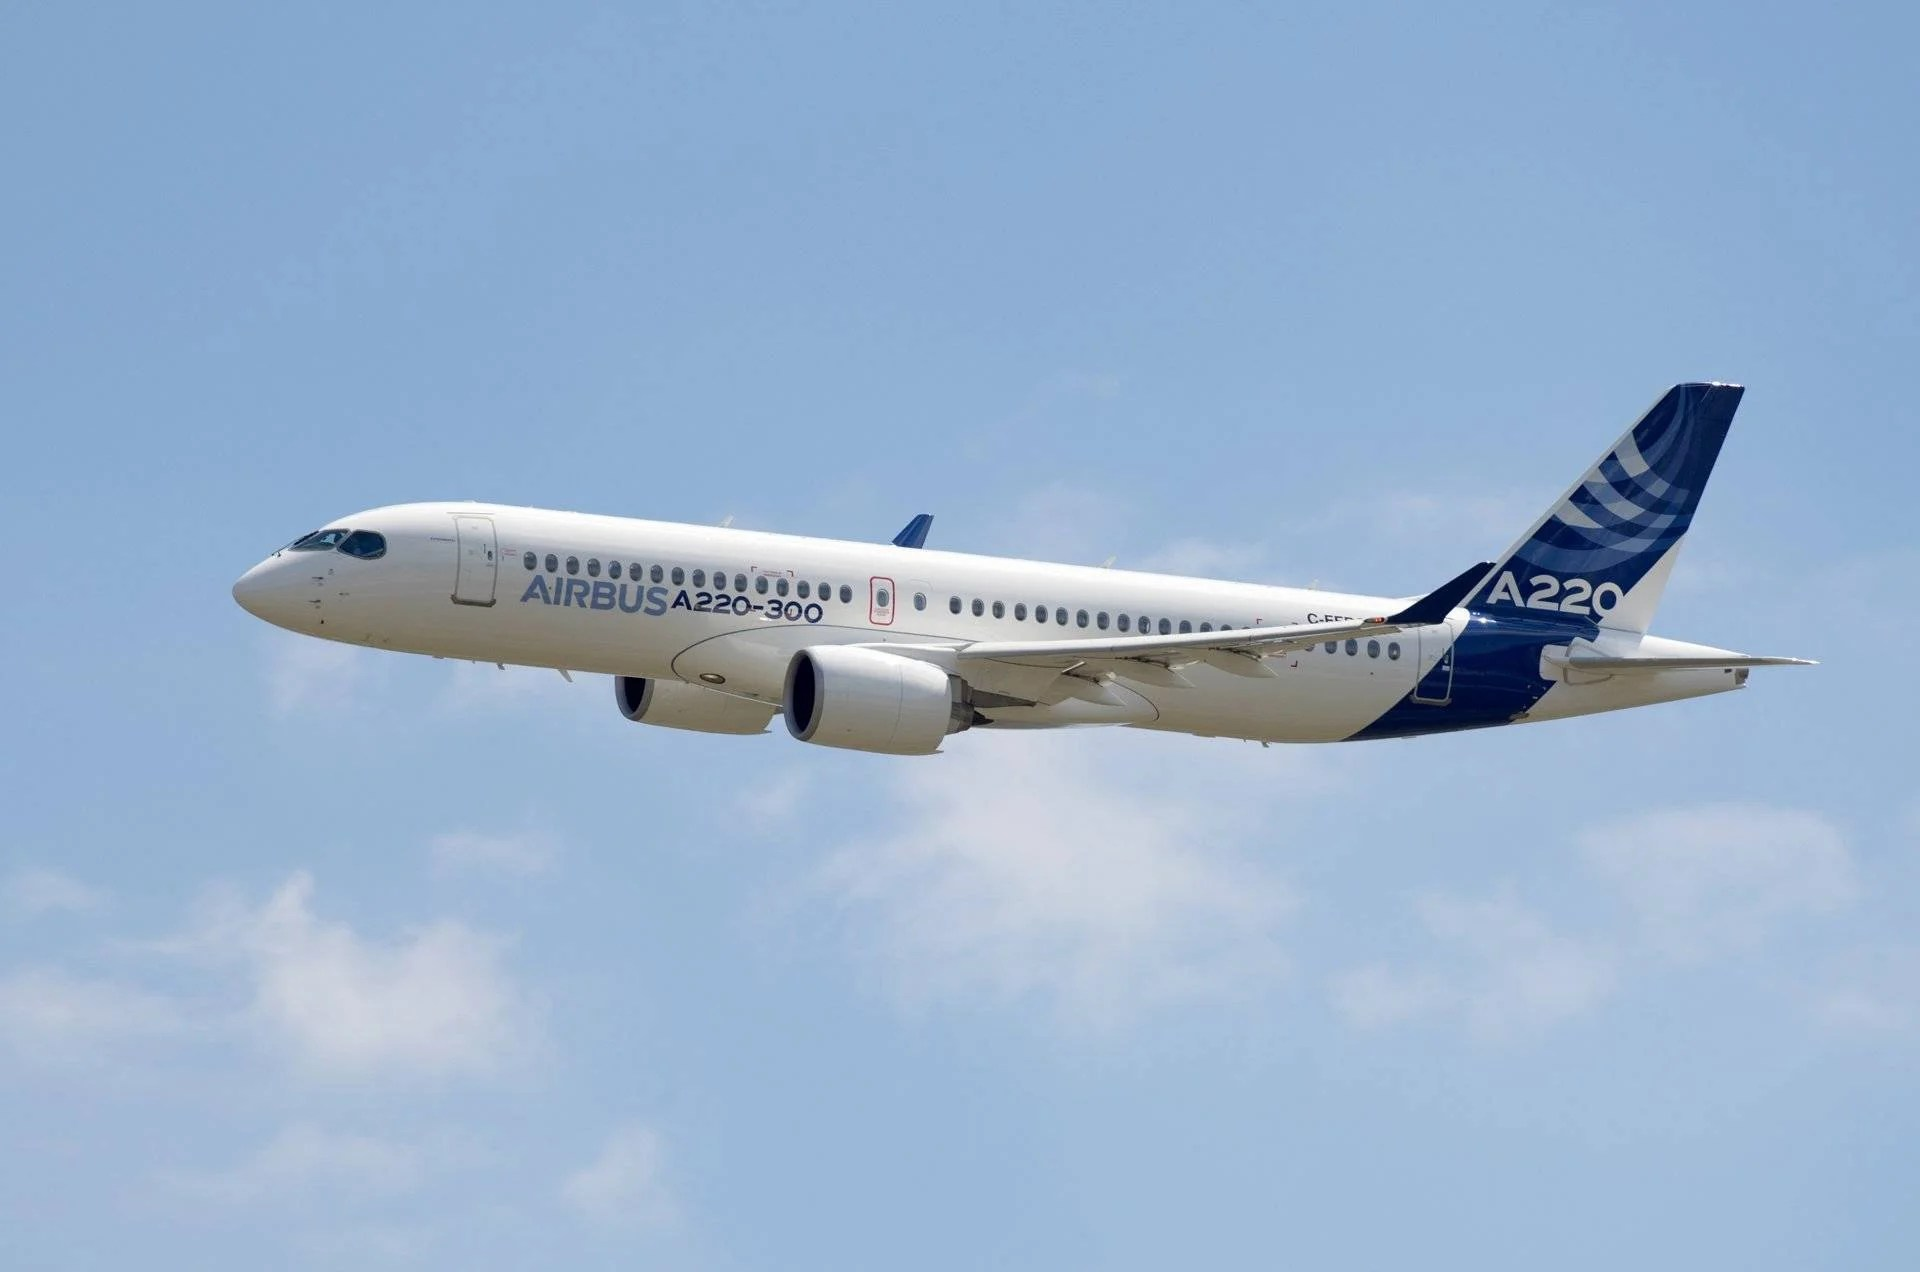 Airbus A220 picks up another new airline customer